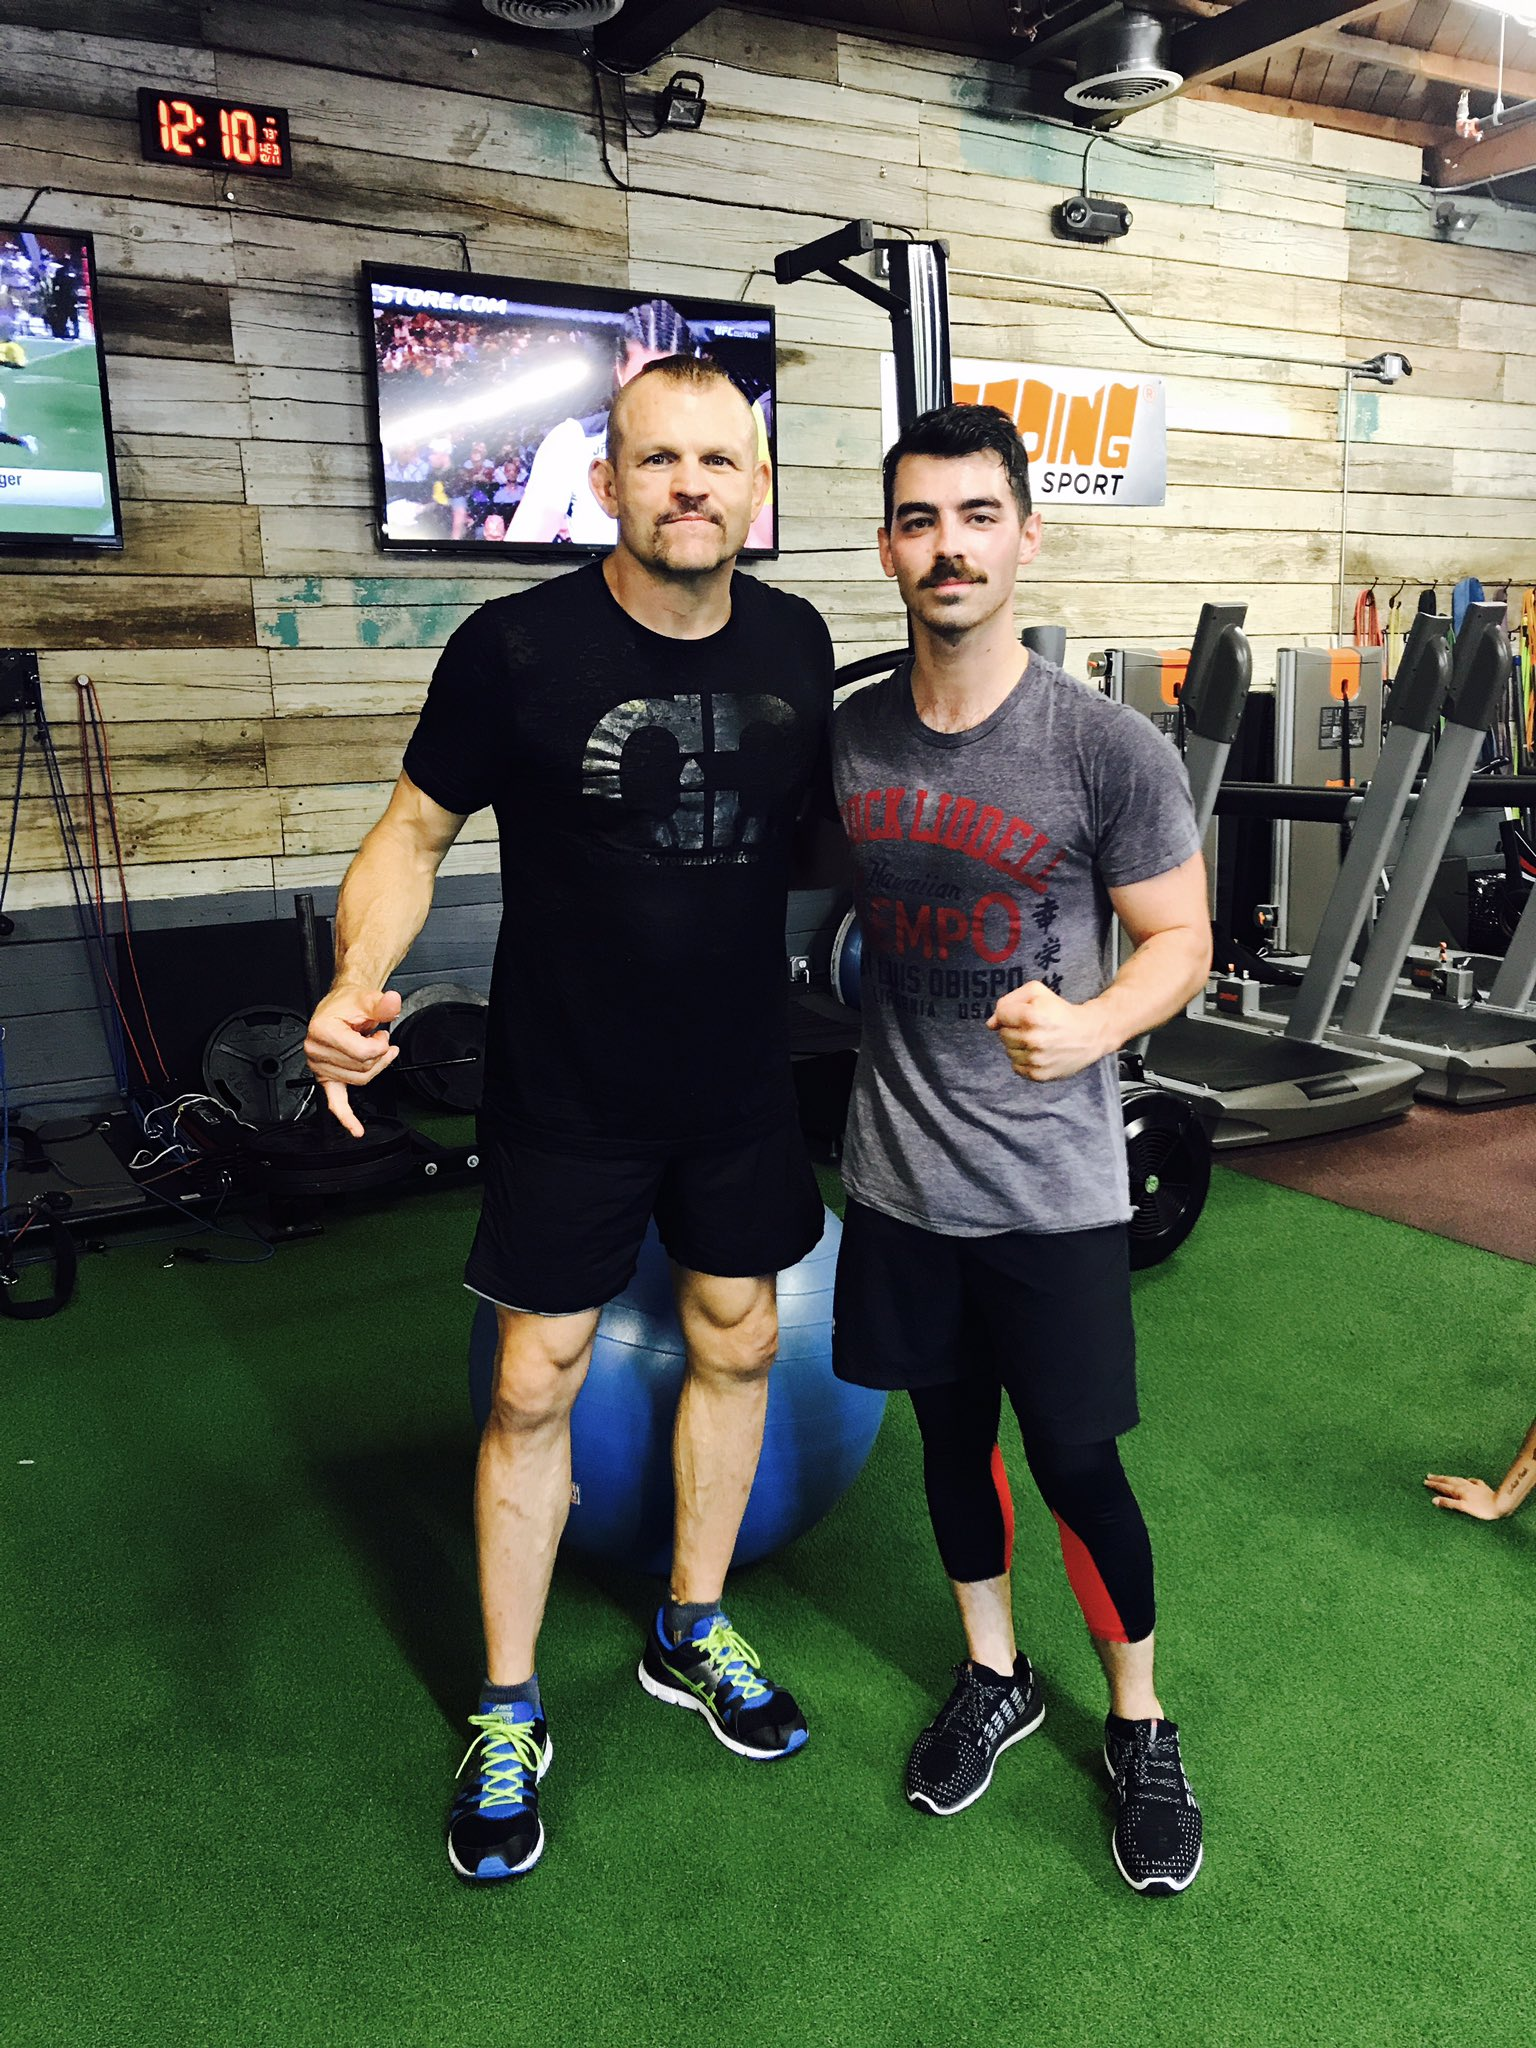 When you wear your Chuck Liddell shirt to the gym and run into Chuck Liddell https://t.co/yNUEBqI542